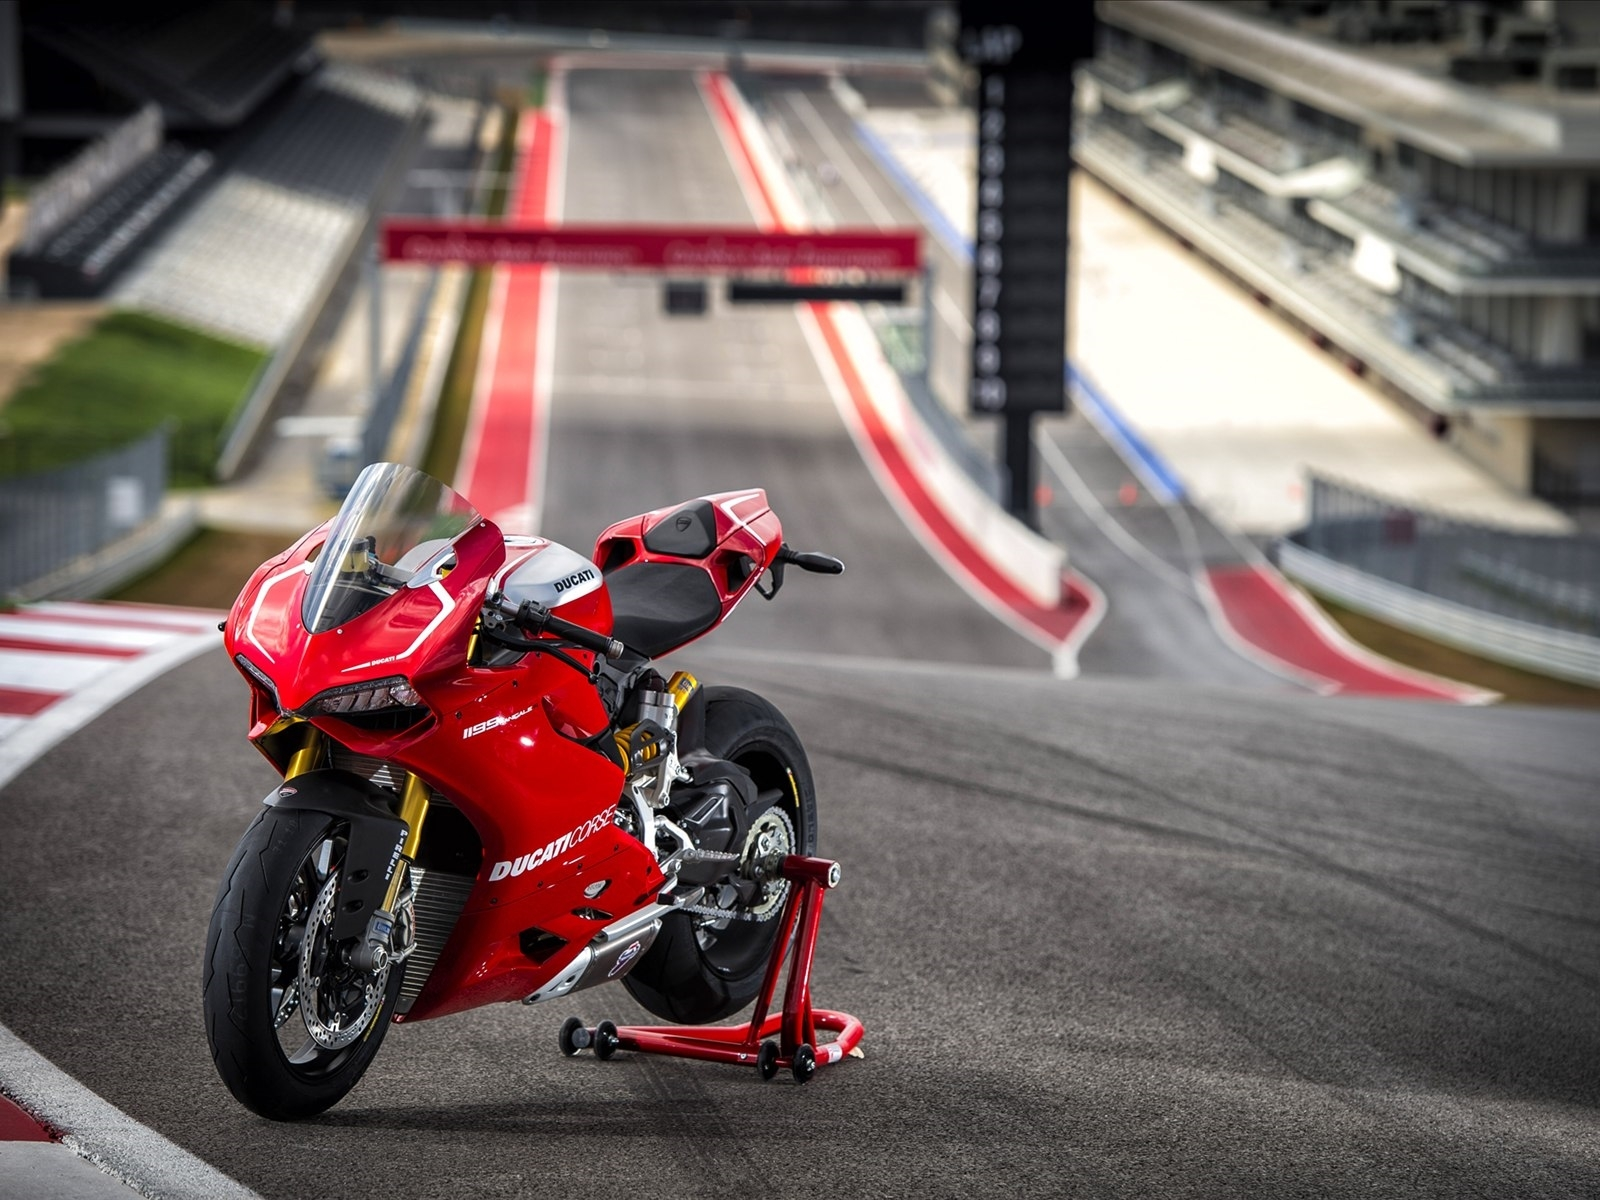 ducati superbike photos